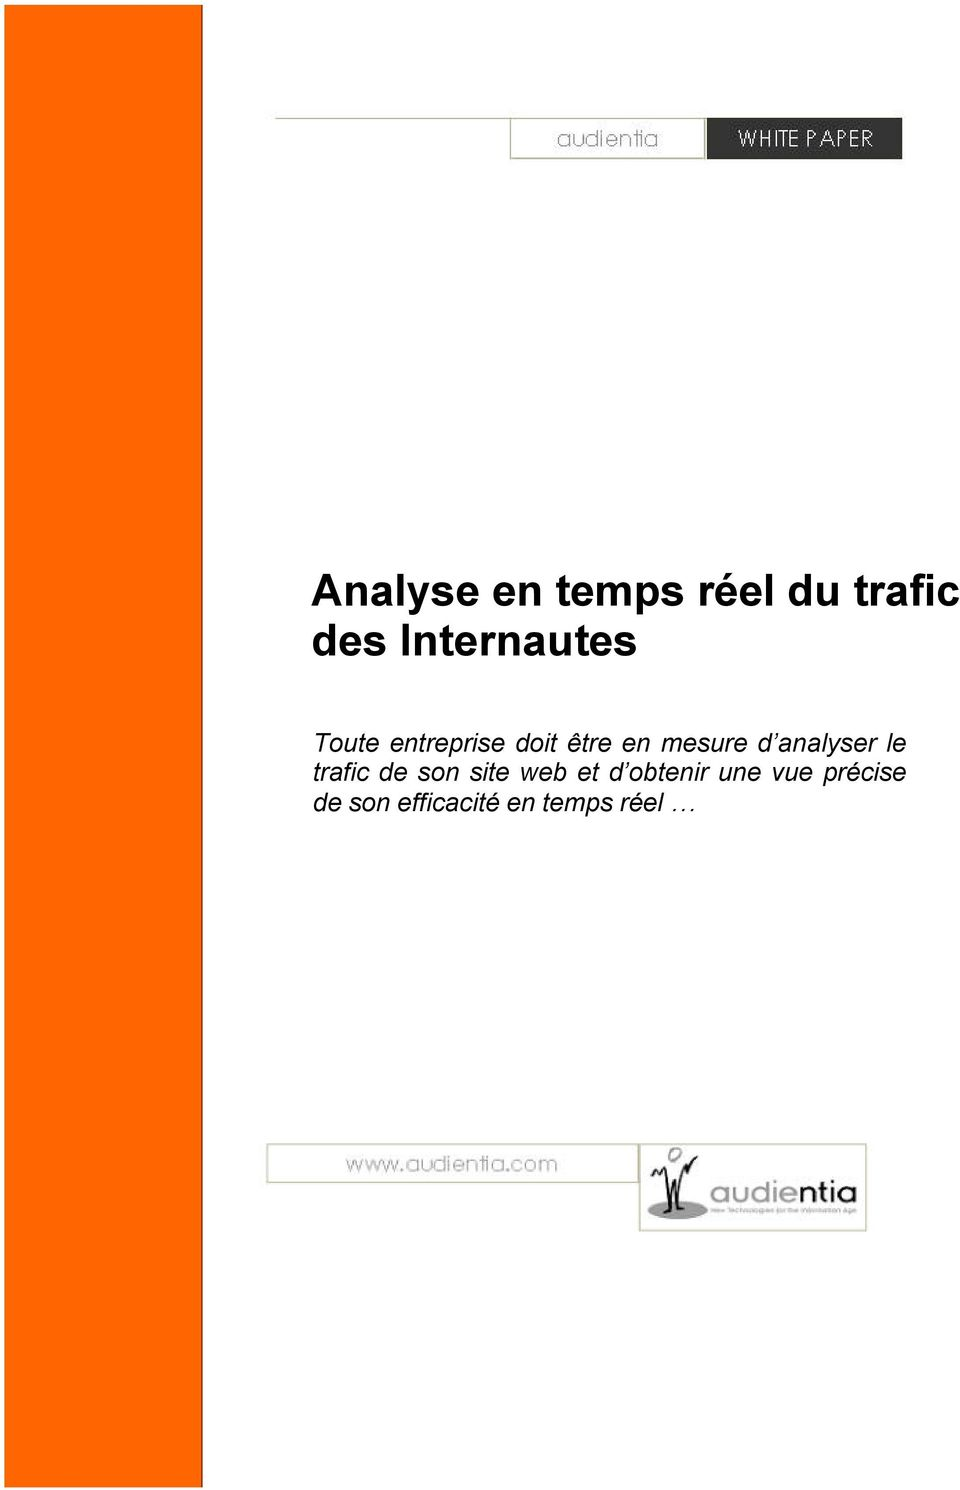 mesure d analyser le trafic de son site web